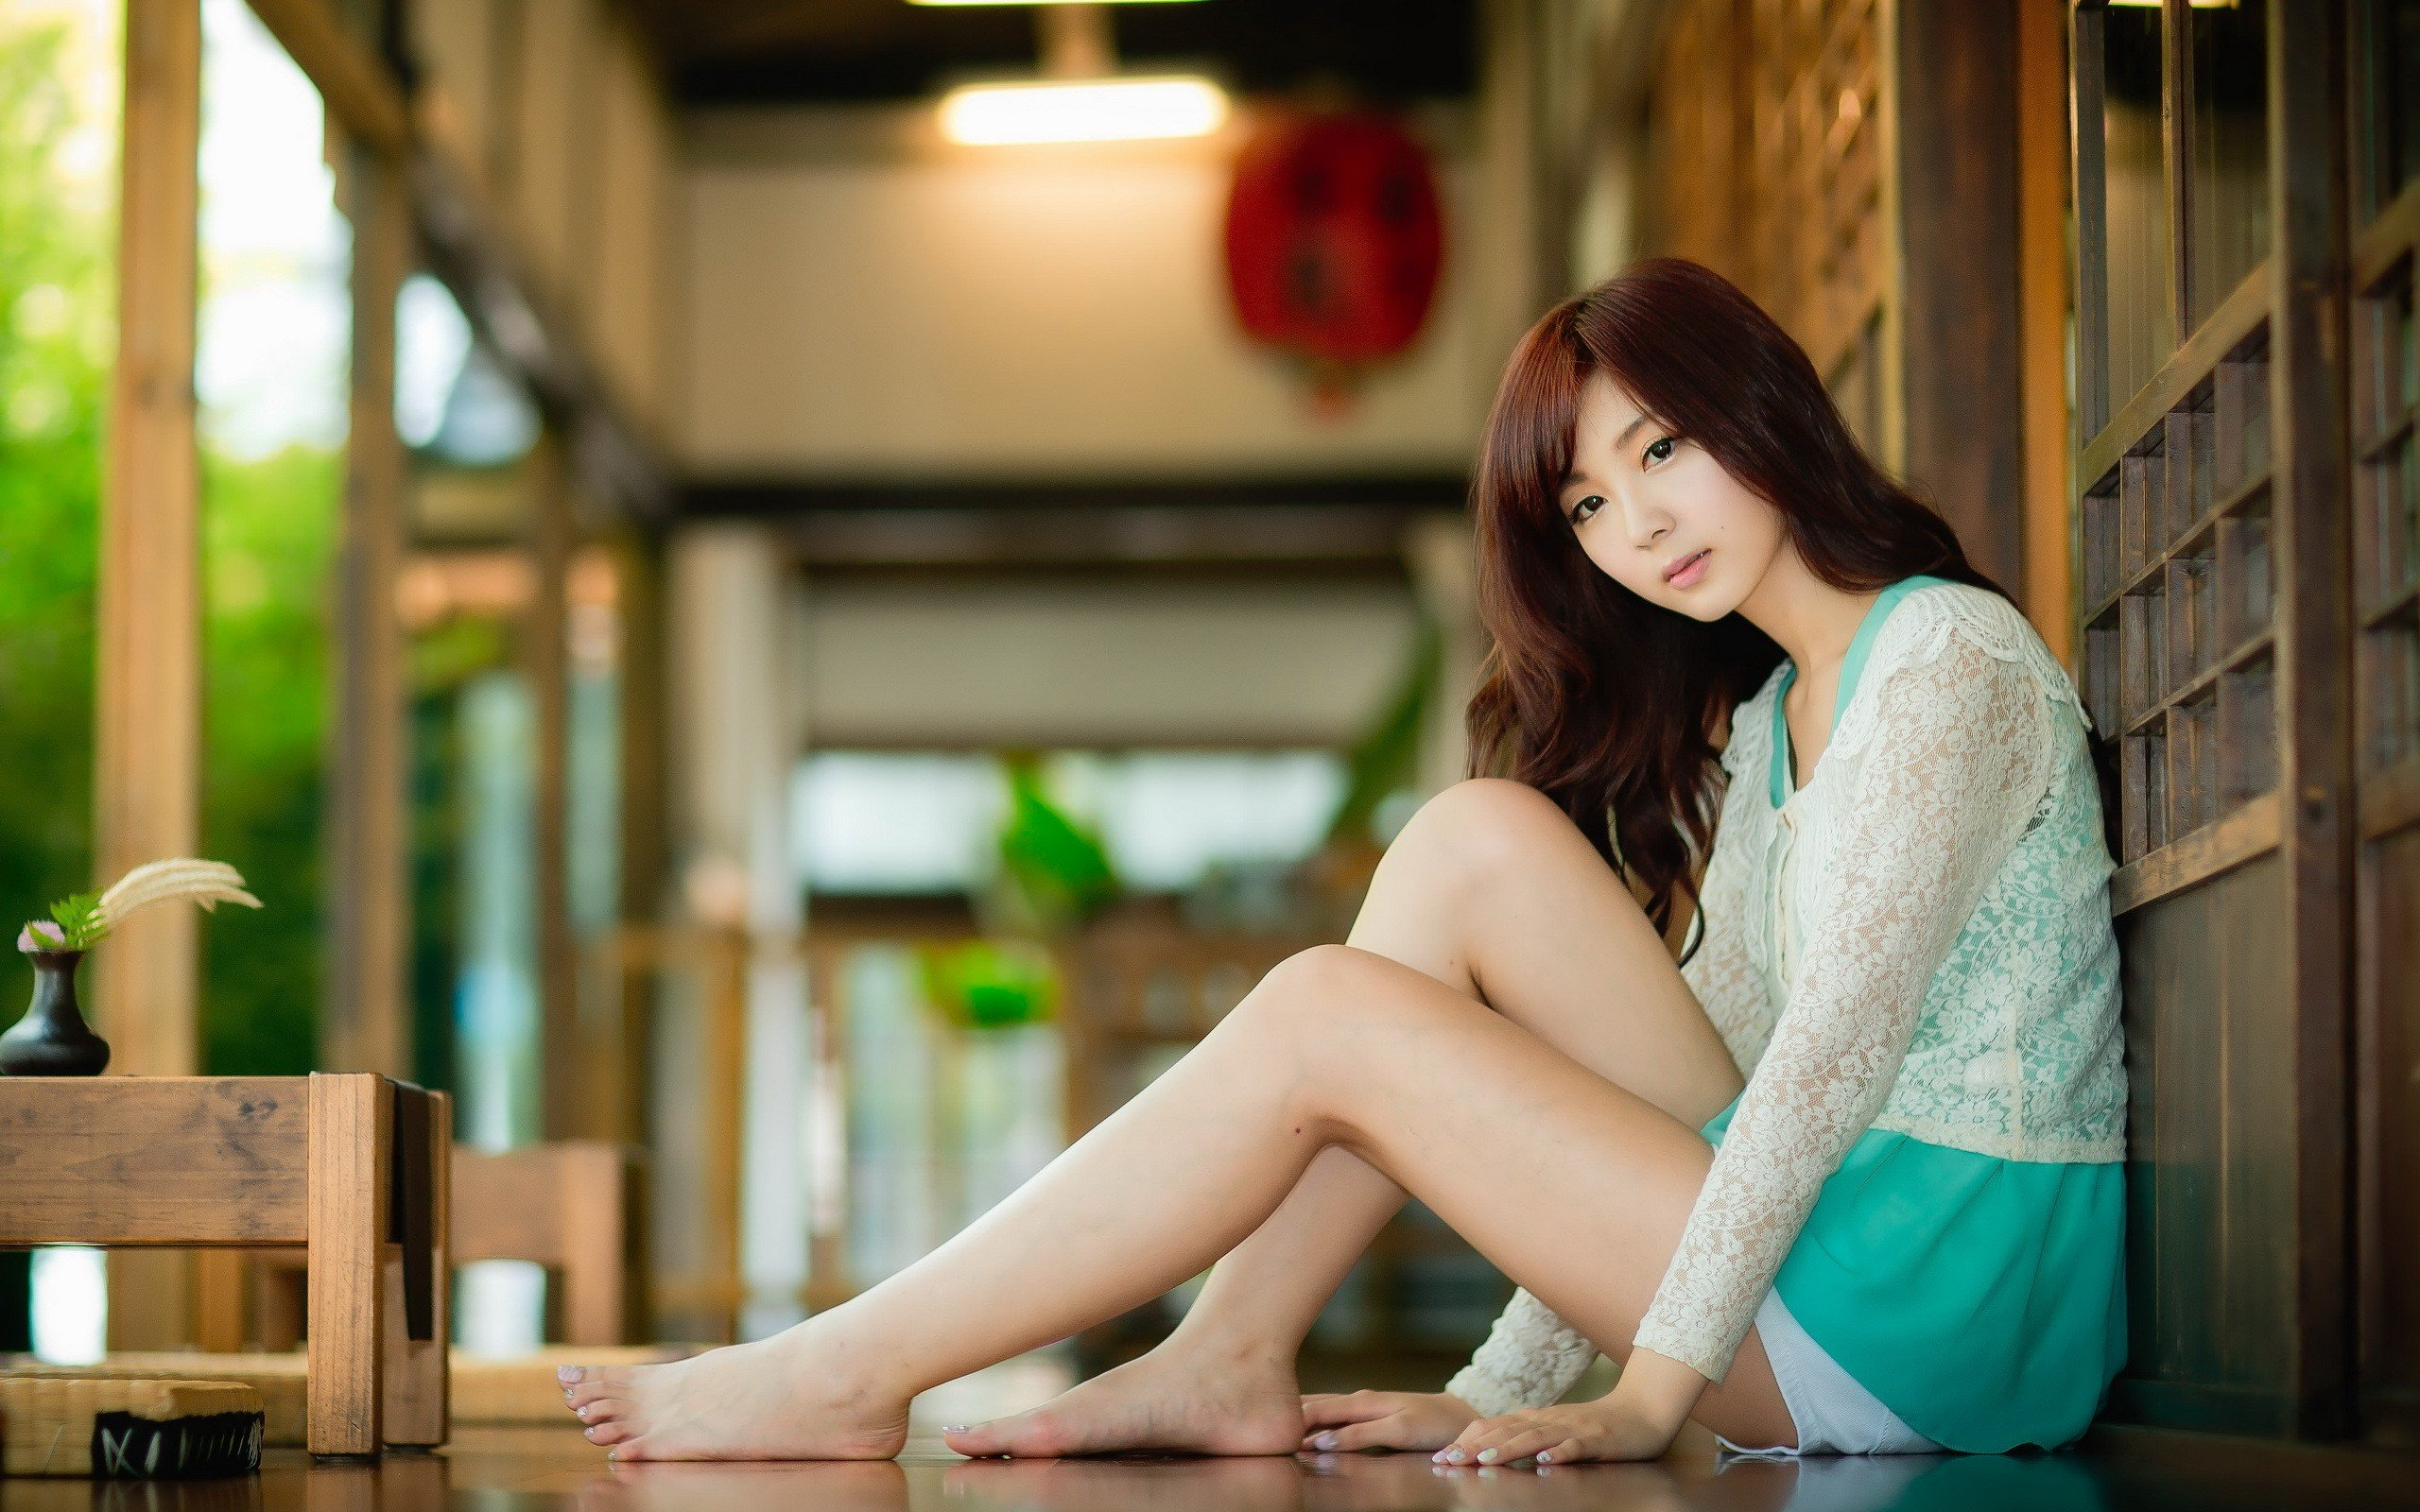 Cute Korean Girl Desktop Wallpaper Women Asian Hd Wallpapers Desktop And Mobile Images